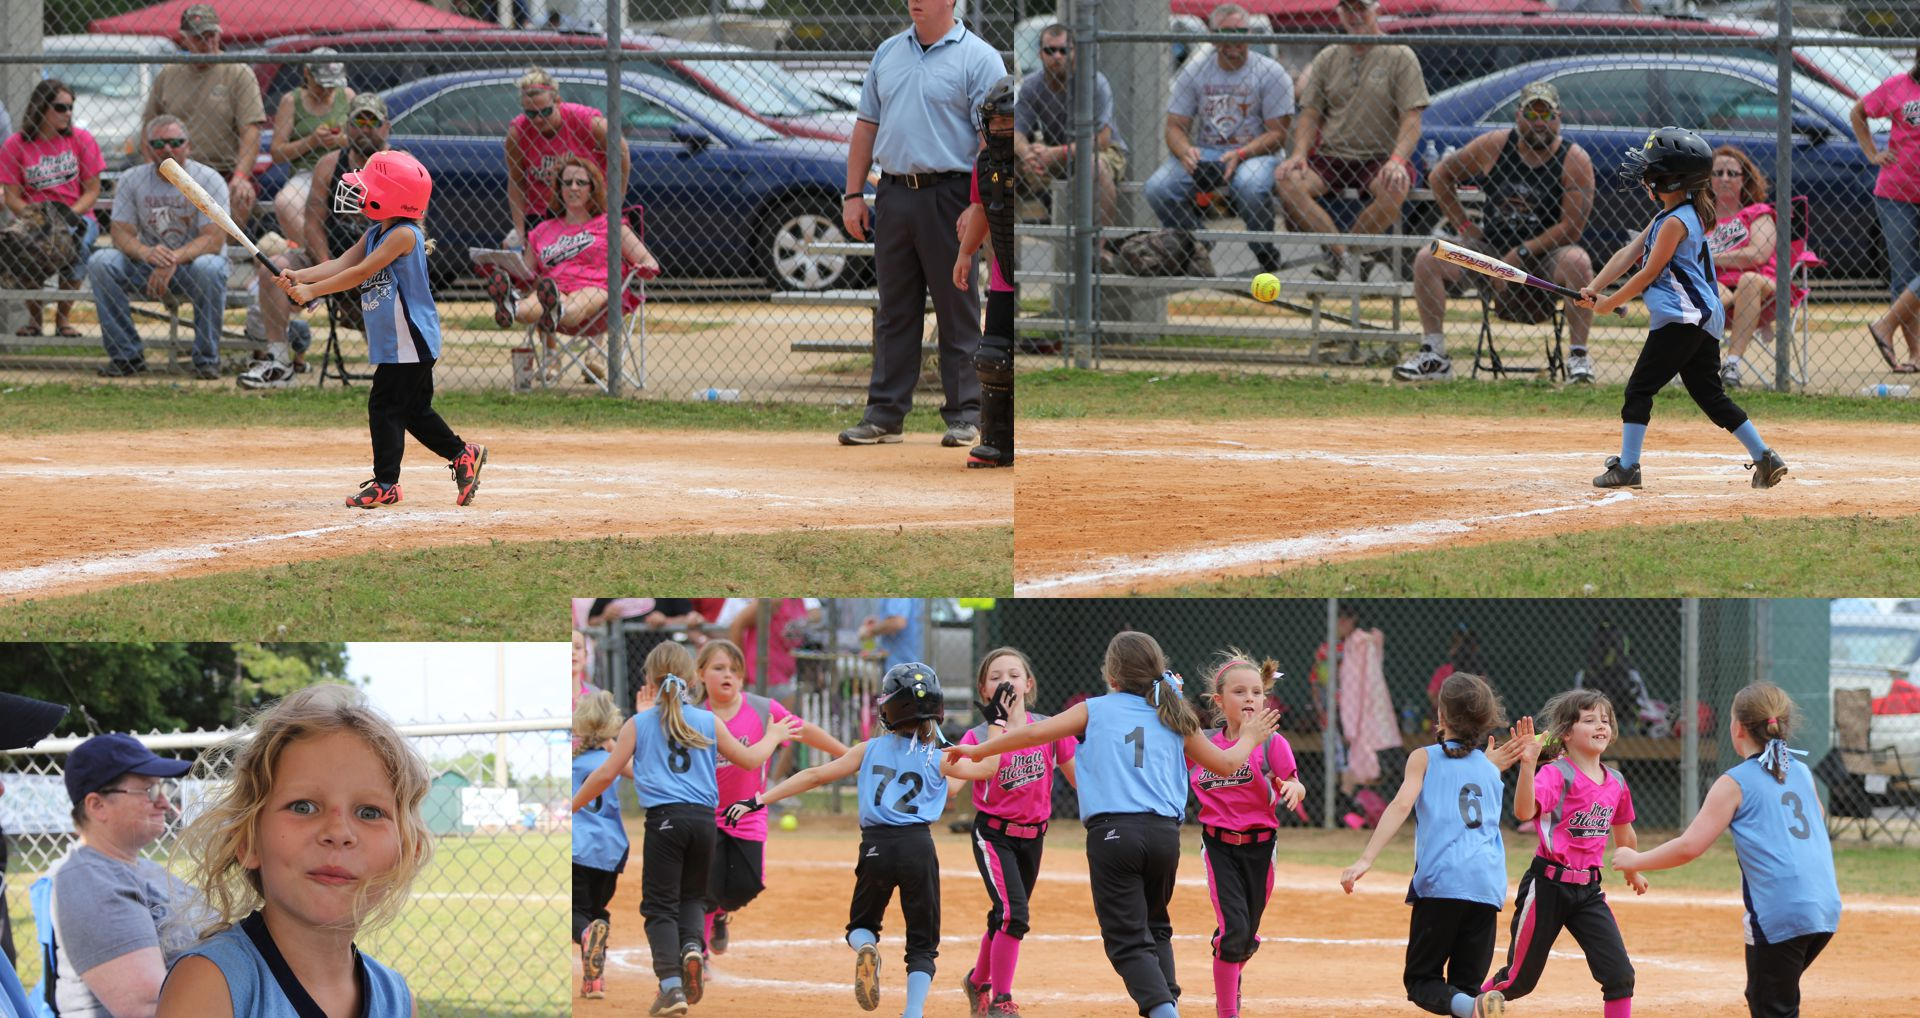 2015 8U Softball Piranhas - Perdido Key - Perdido Bay Your Sports Association - Picture 4